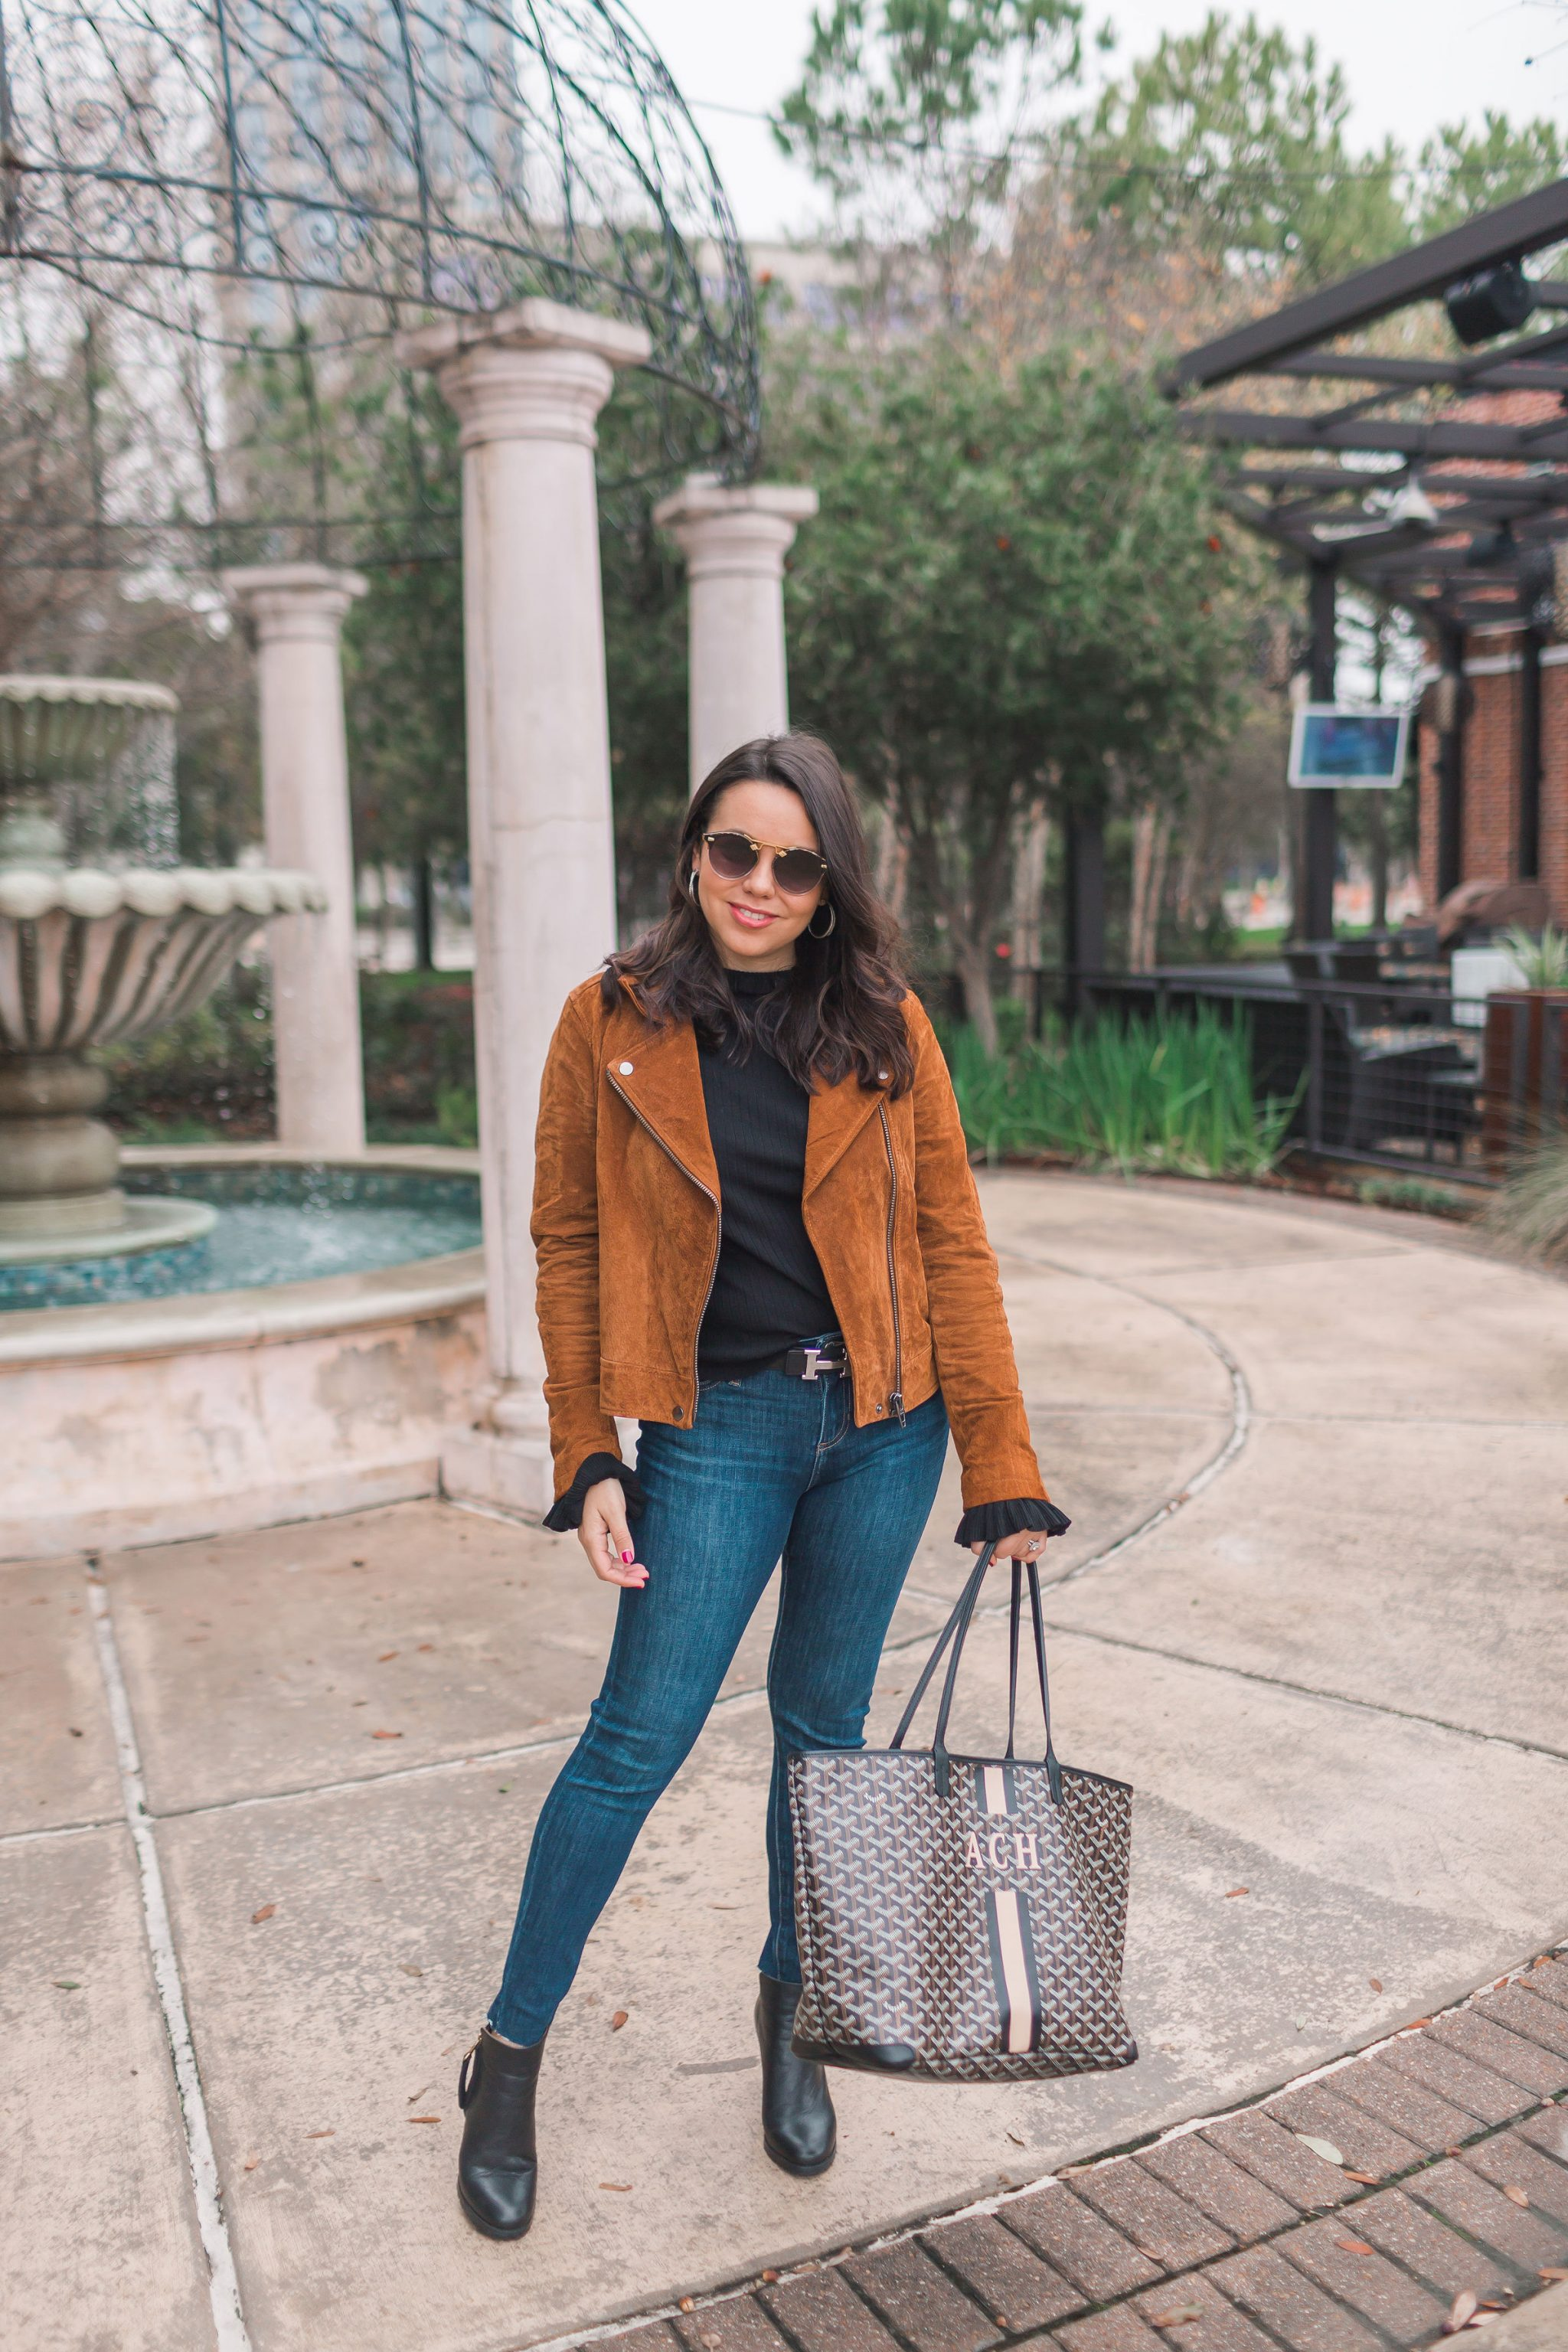 Suede moto jacket outfit ideas